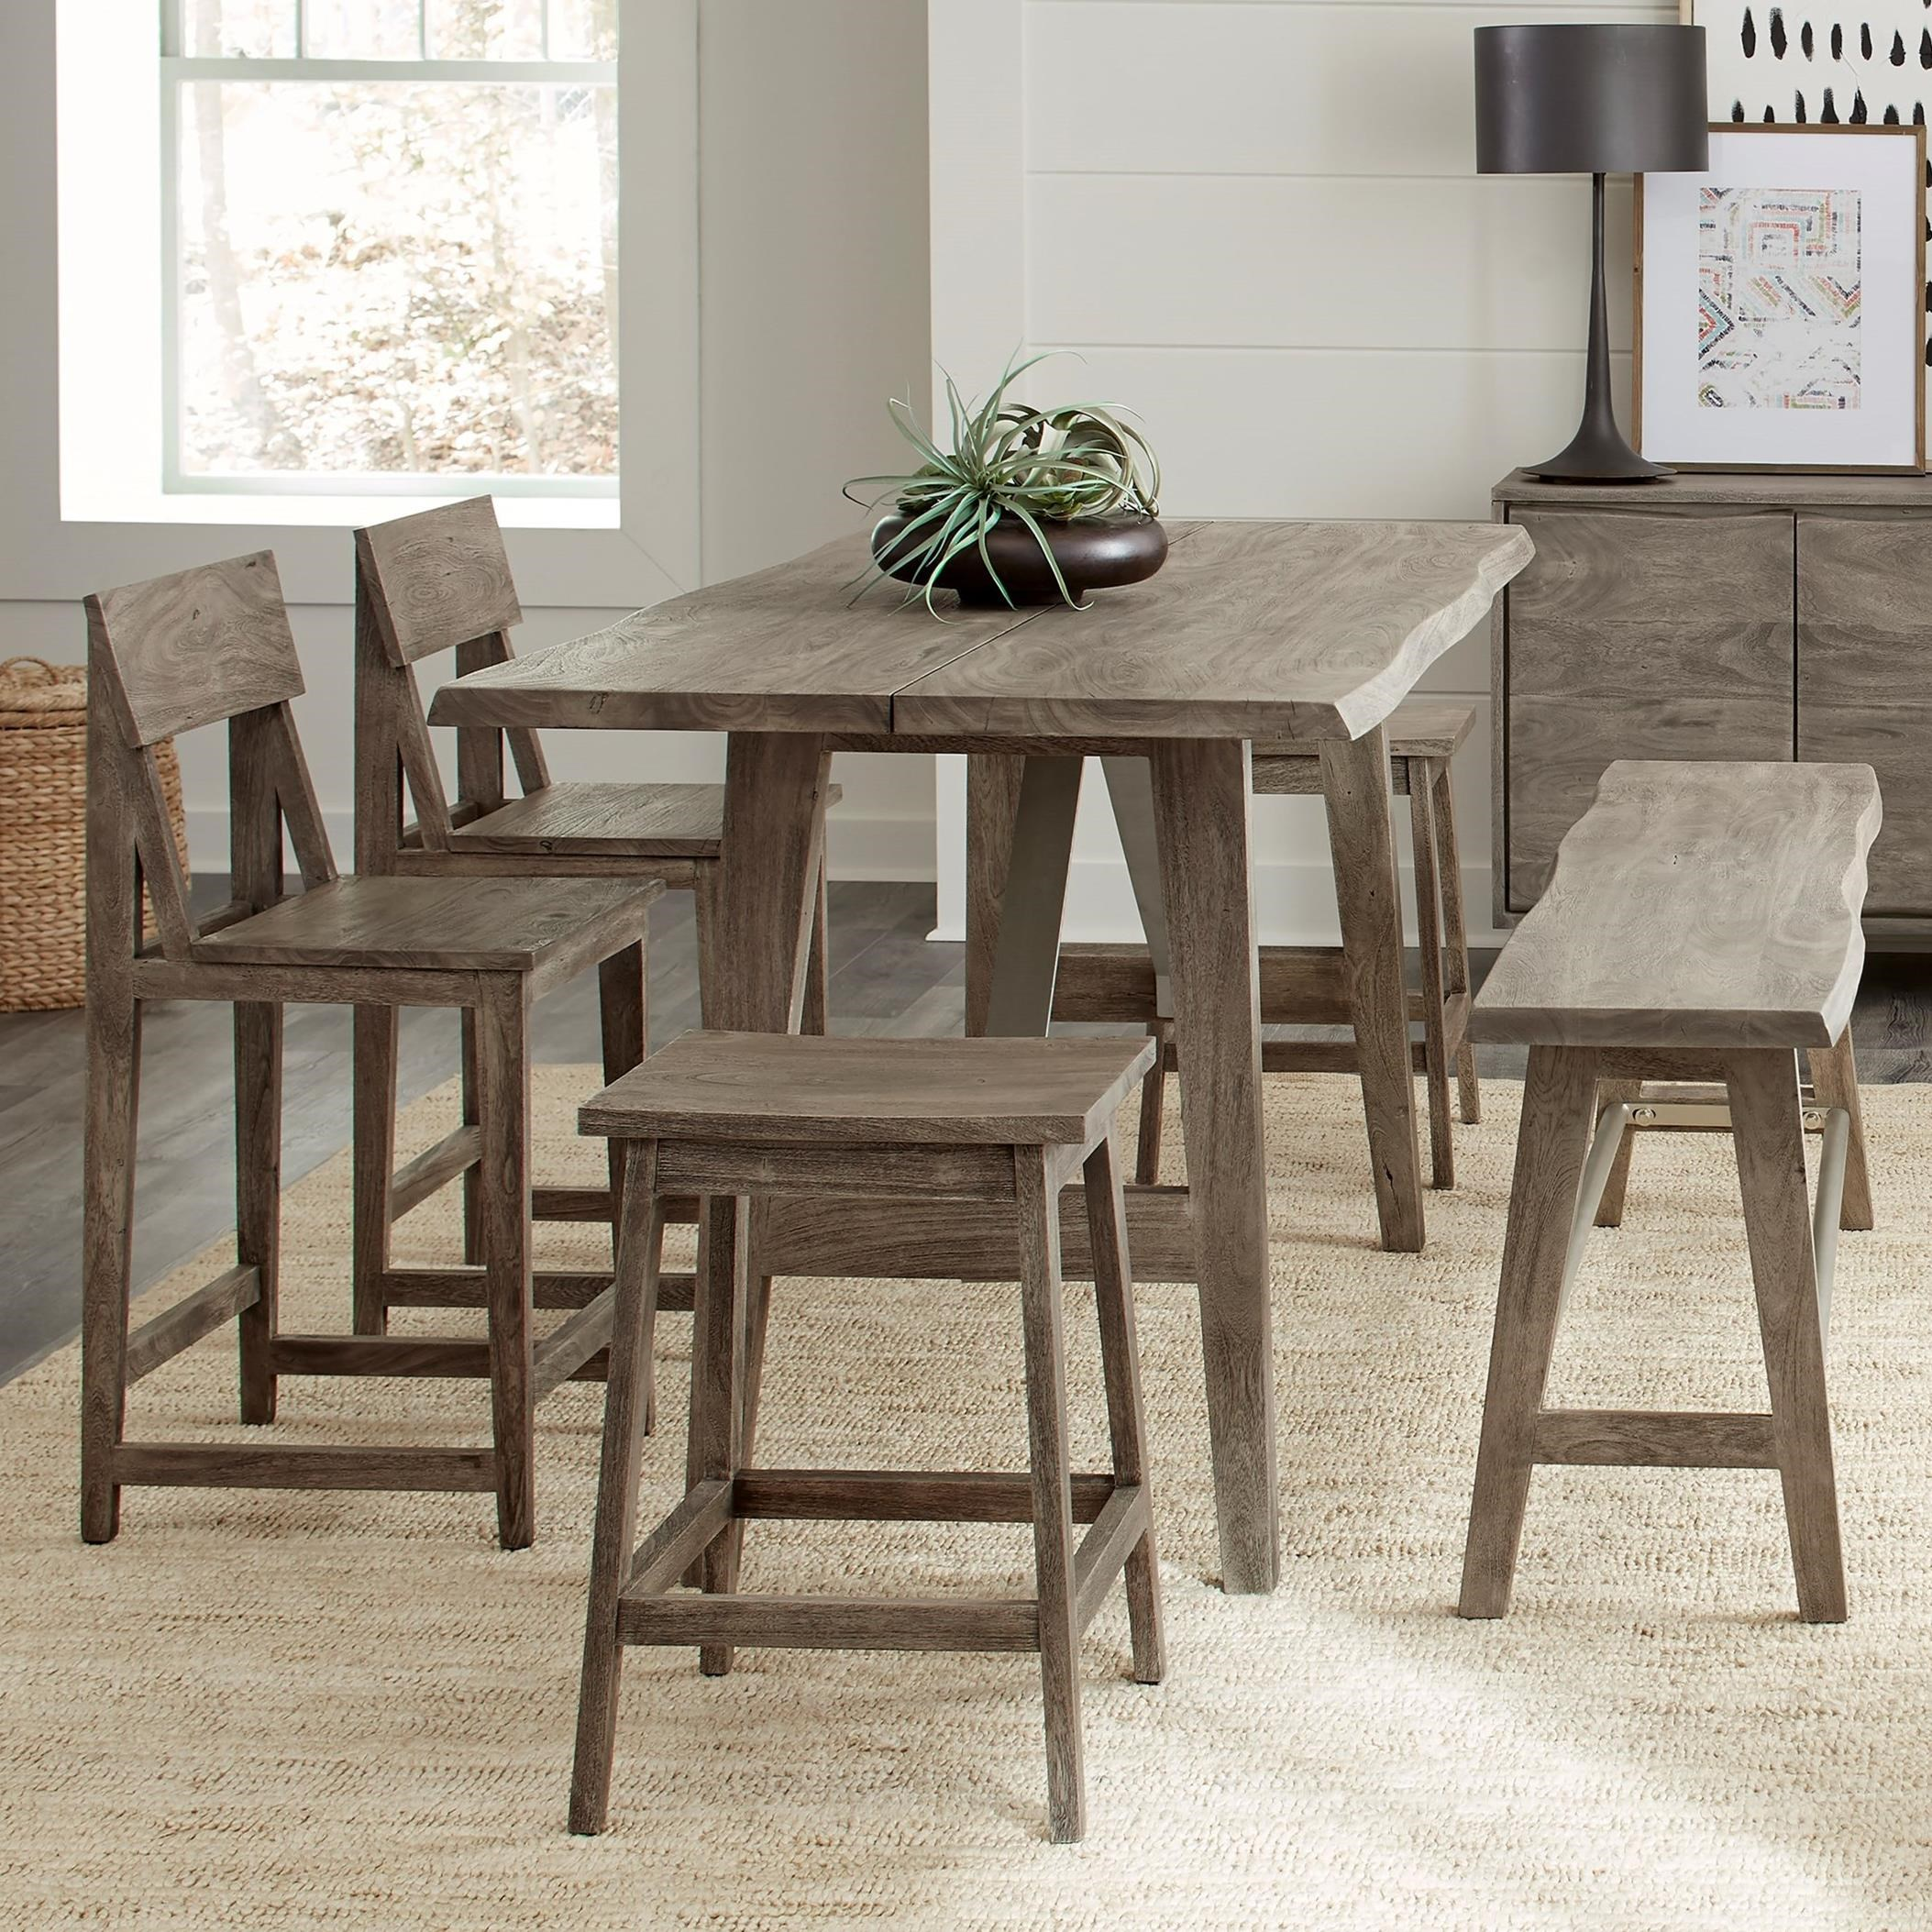 6-Piece Counter Height Table Set